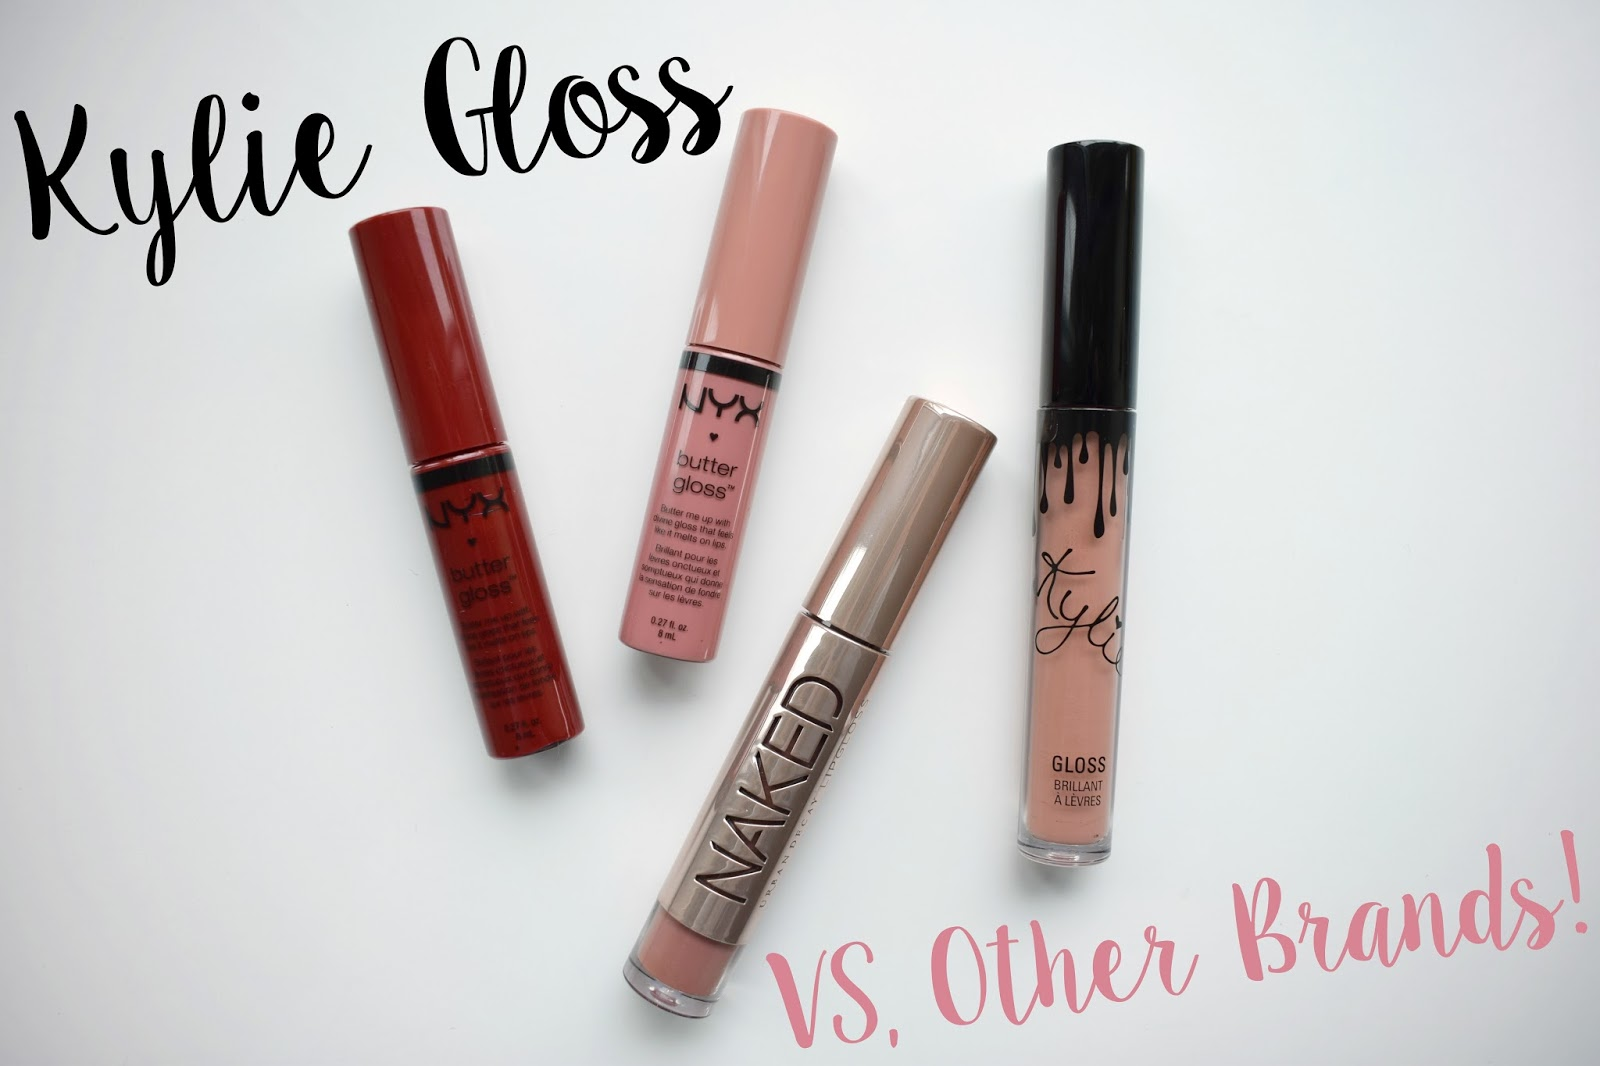 Kylie Cosmetics Lip Gloss by Kylie Jenner compared to NYX butter gloss and other brands